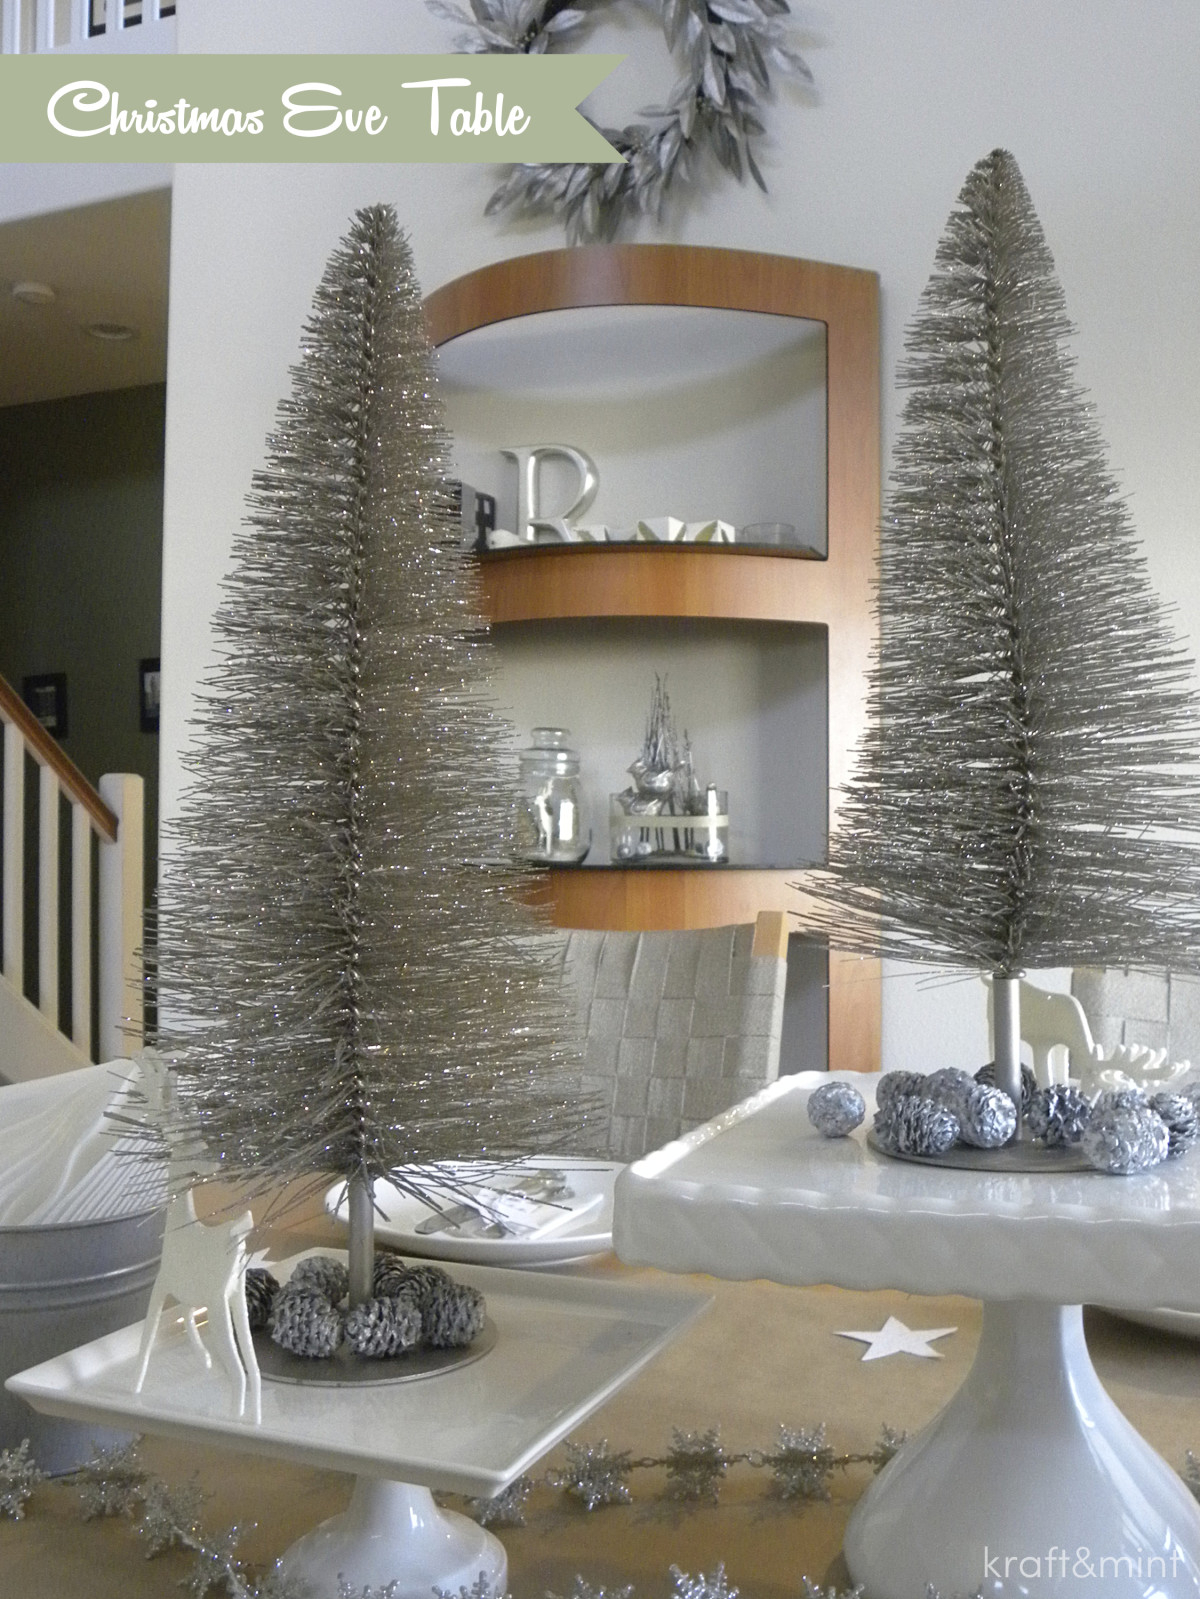 xmasdecor_table_zoom2